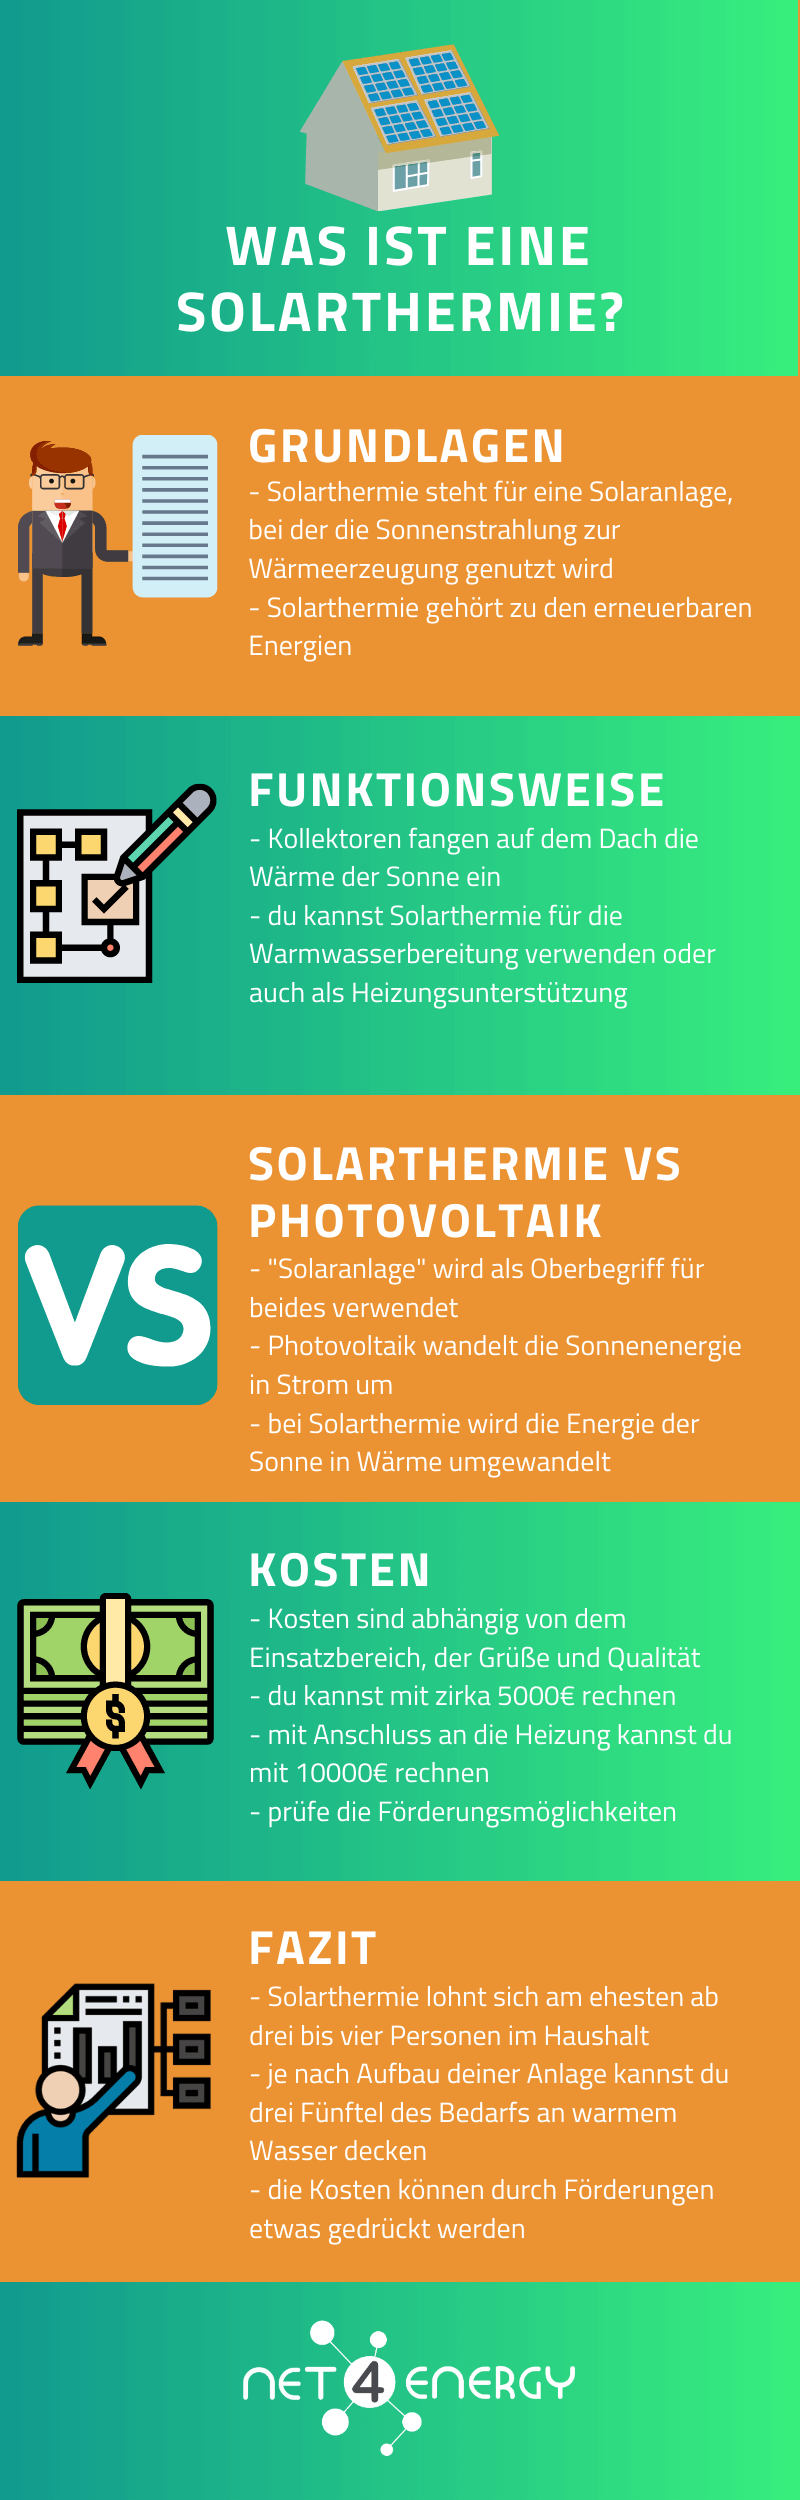 was-ist-solarthermie-infografik-net4energy